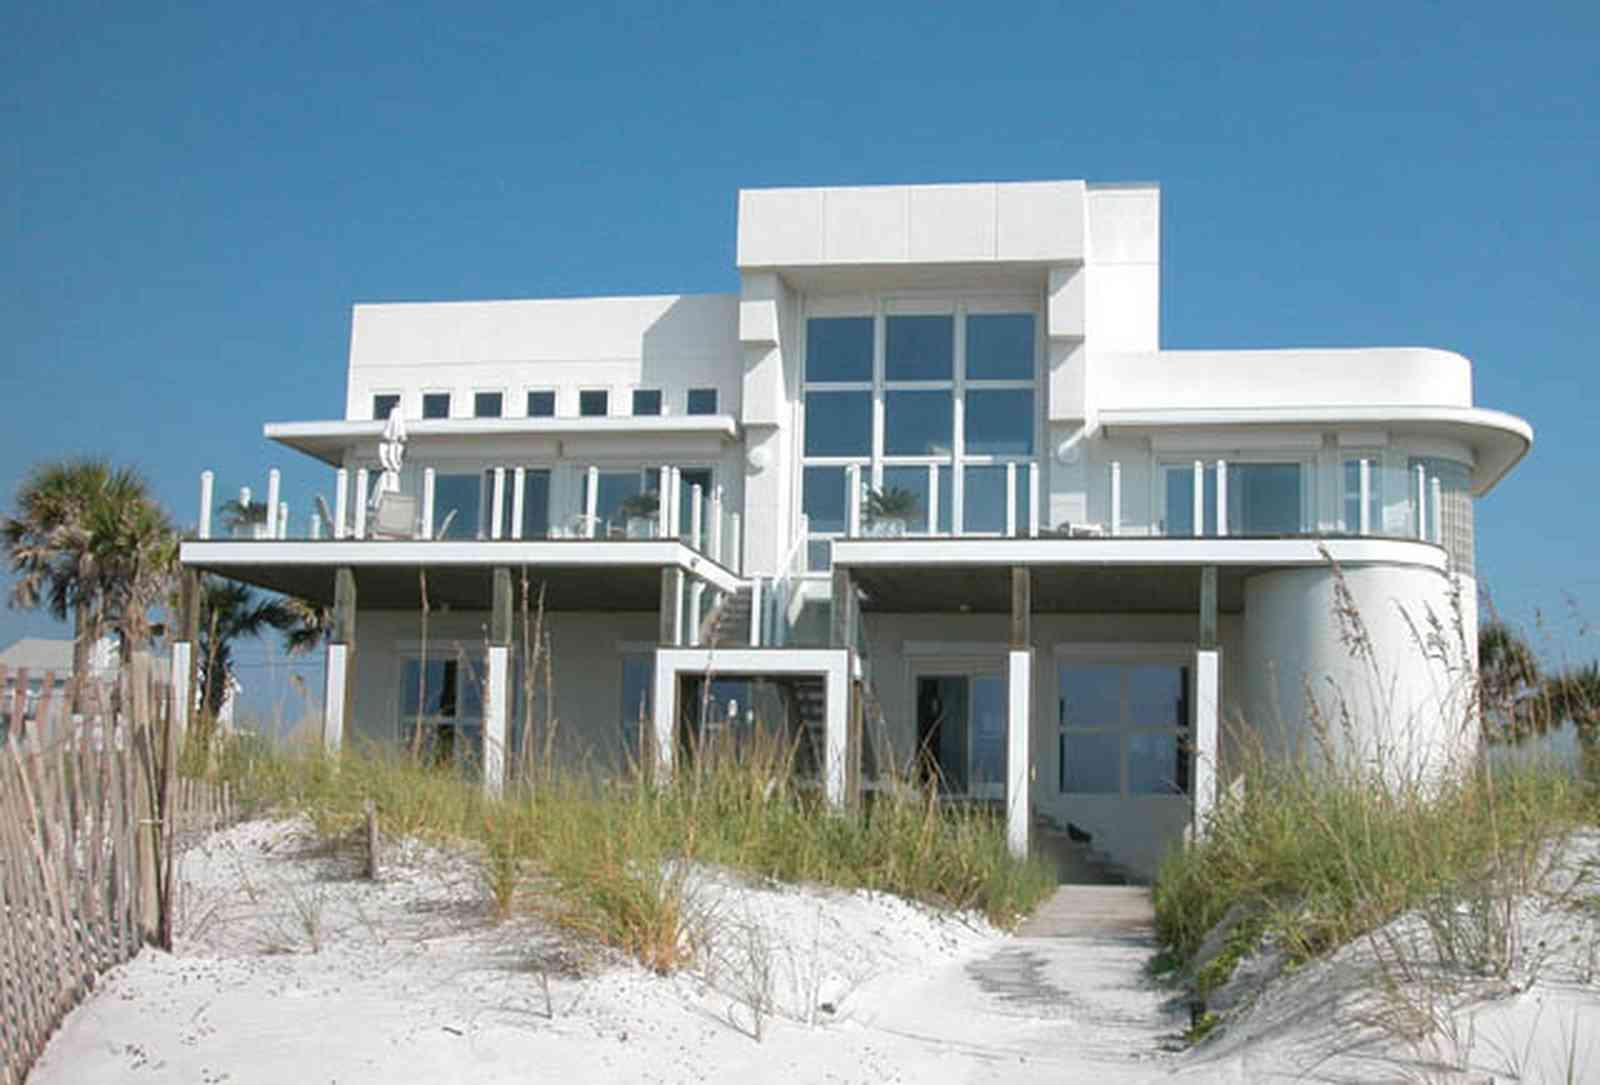 Pensacola-Beach:-Ariola-Drive-Art-Deco-House_01.jpg:  sand, crystal sand, white sand, sugar sand, sea oats, bauhaus architectural style, palm trees, dune restoration, beachfront property